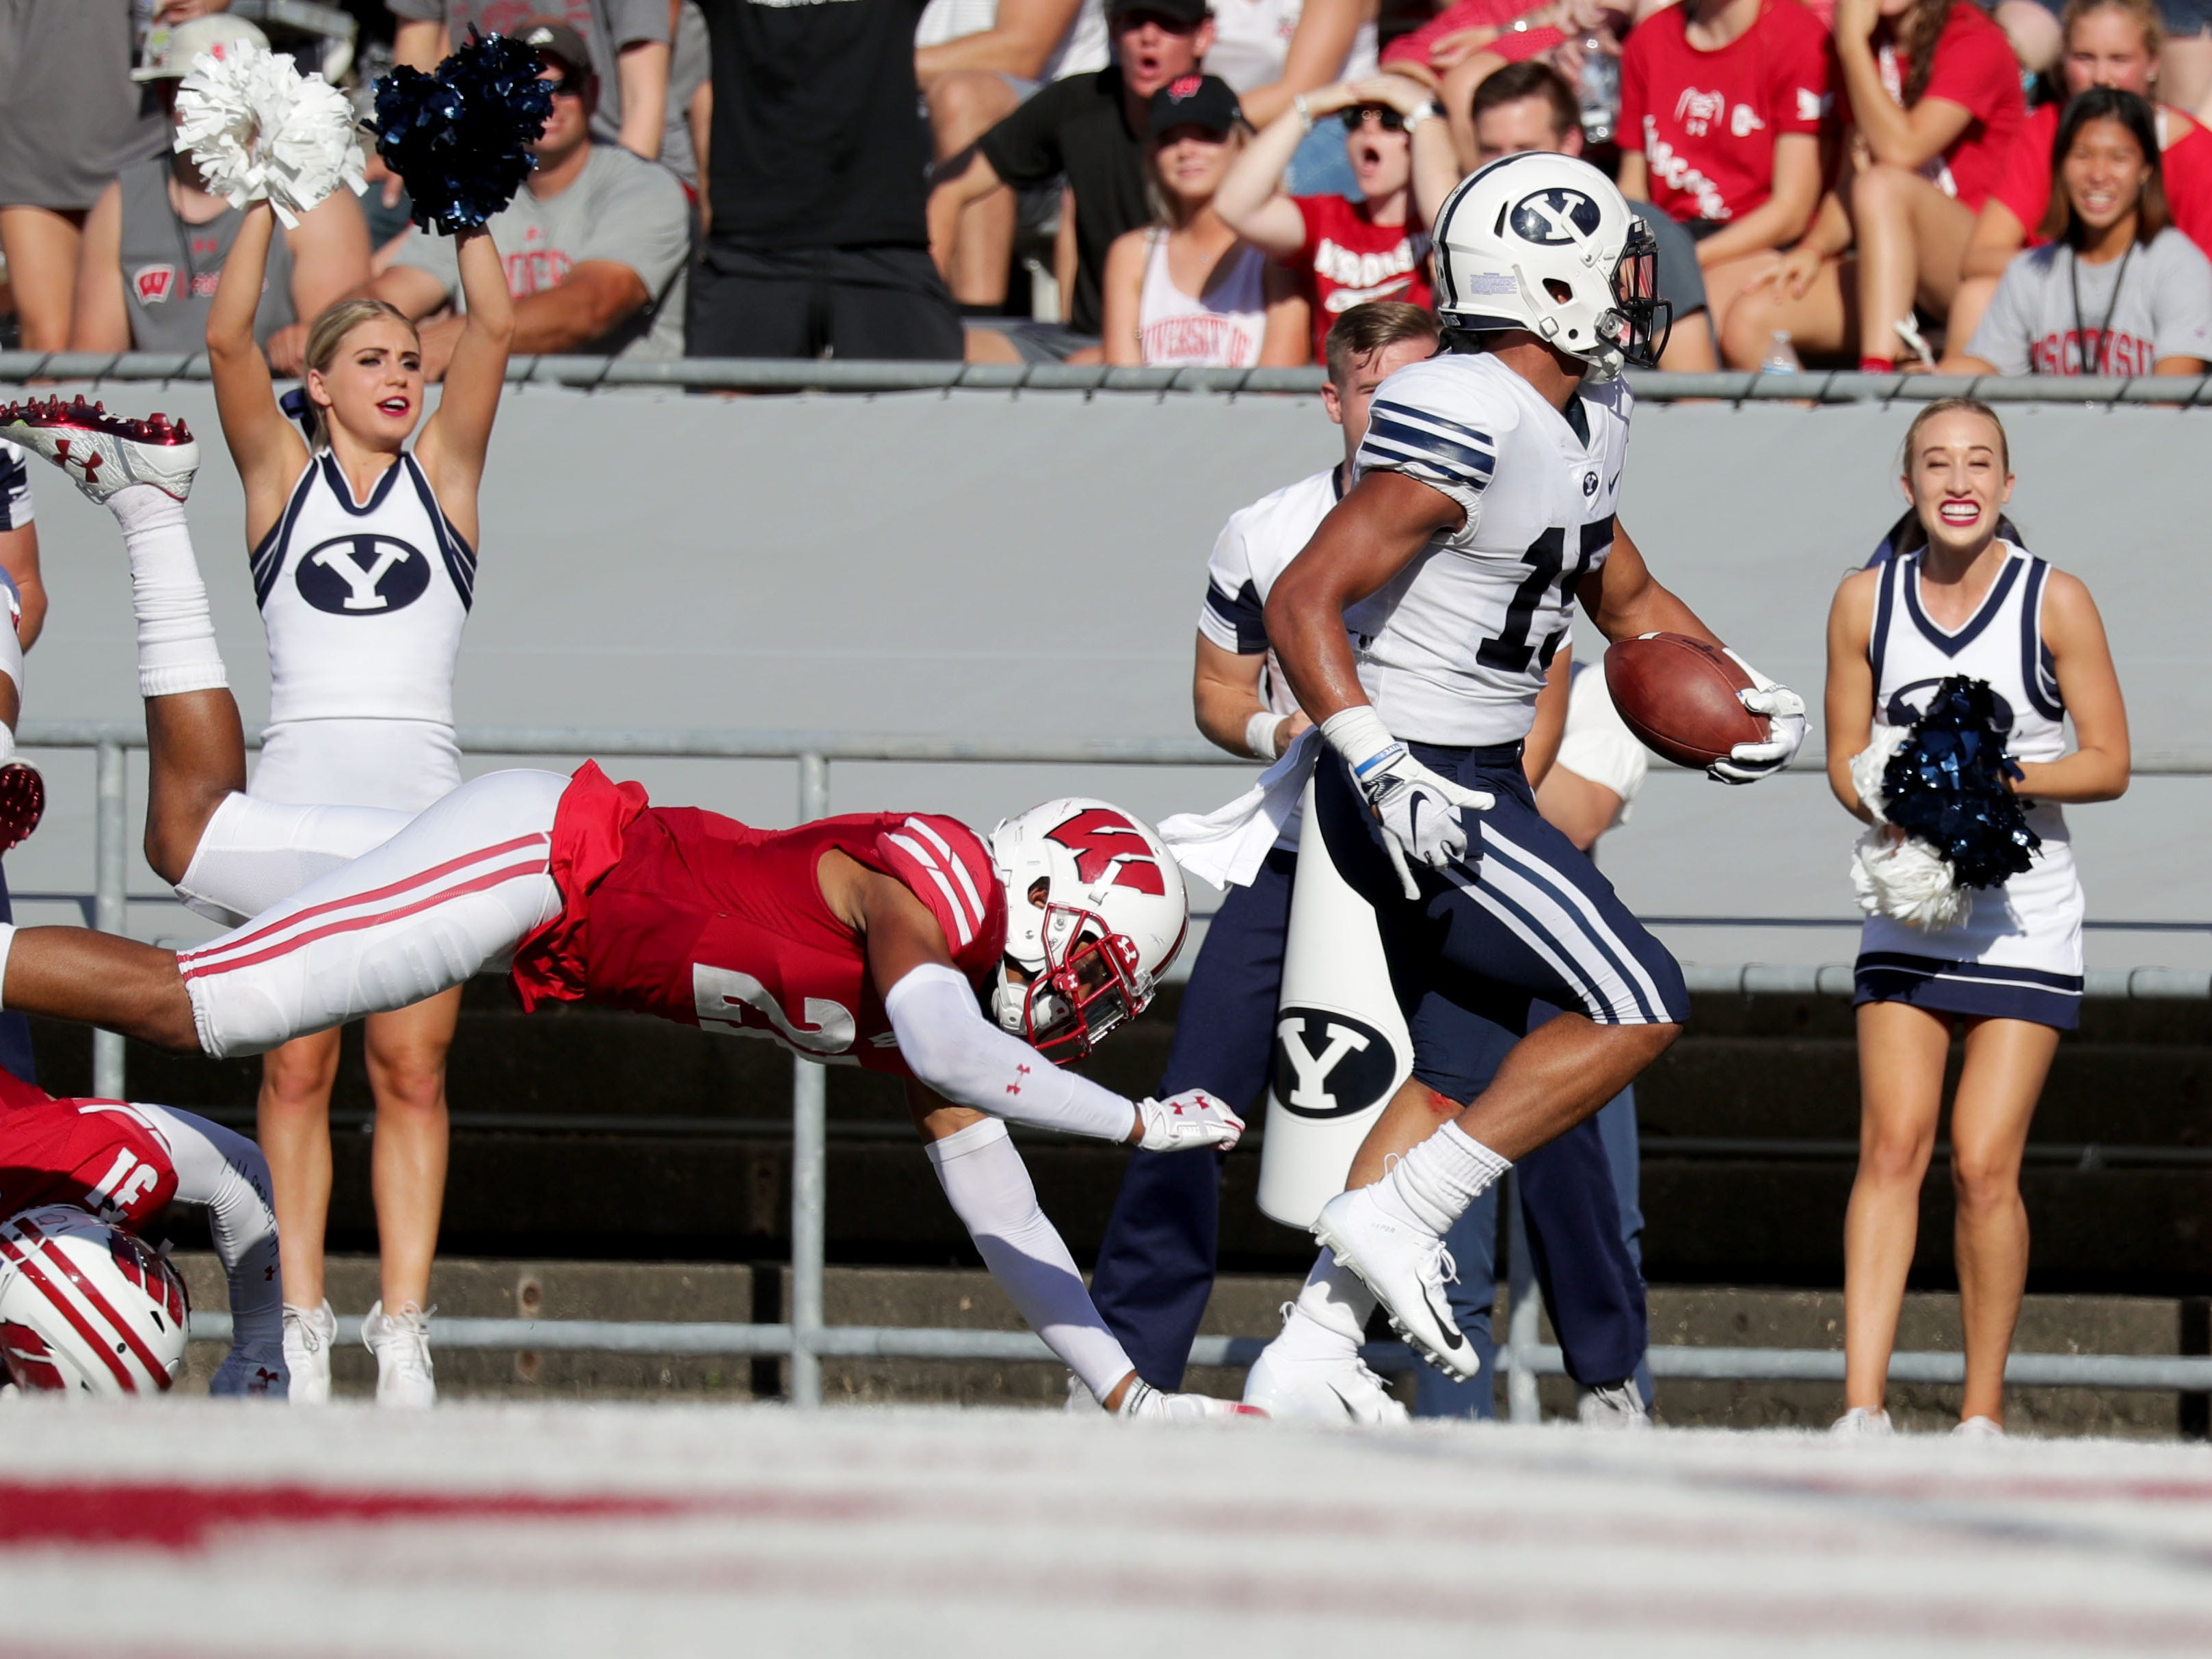 Brigham Young Cougars wide receiver Aleva Hifo runs after a catch as Wisconsin Badgers cornerback Caesar Williams tries to make a tackle.